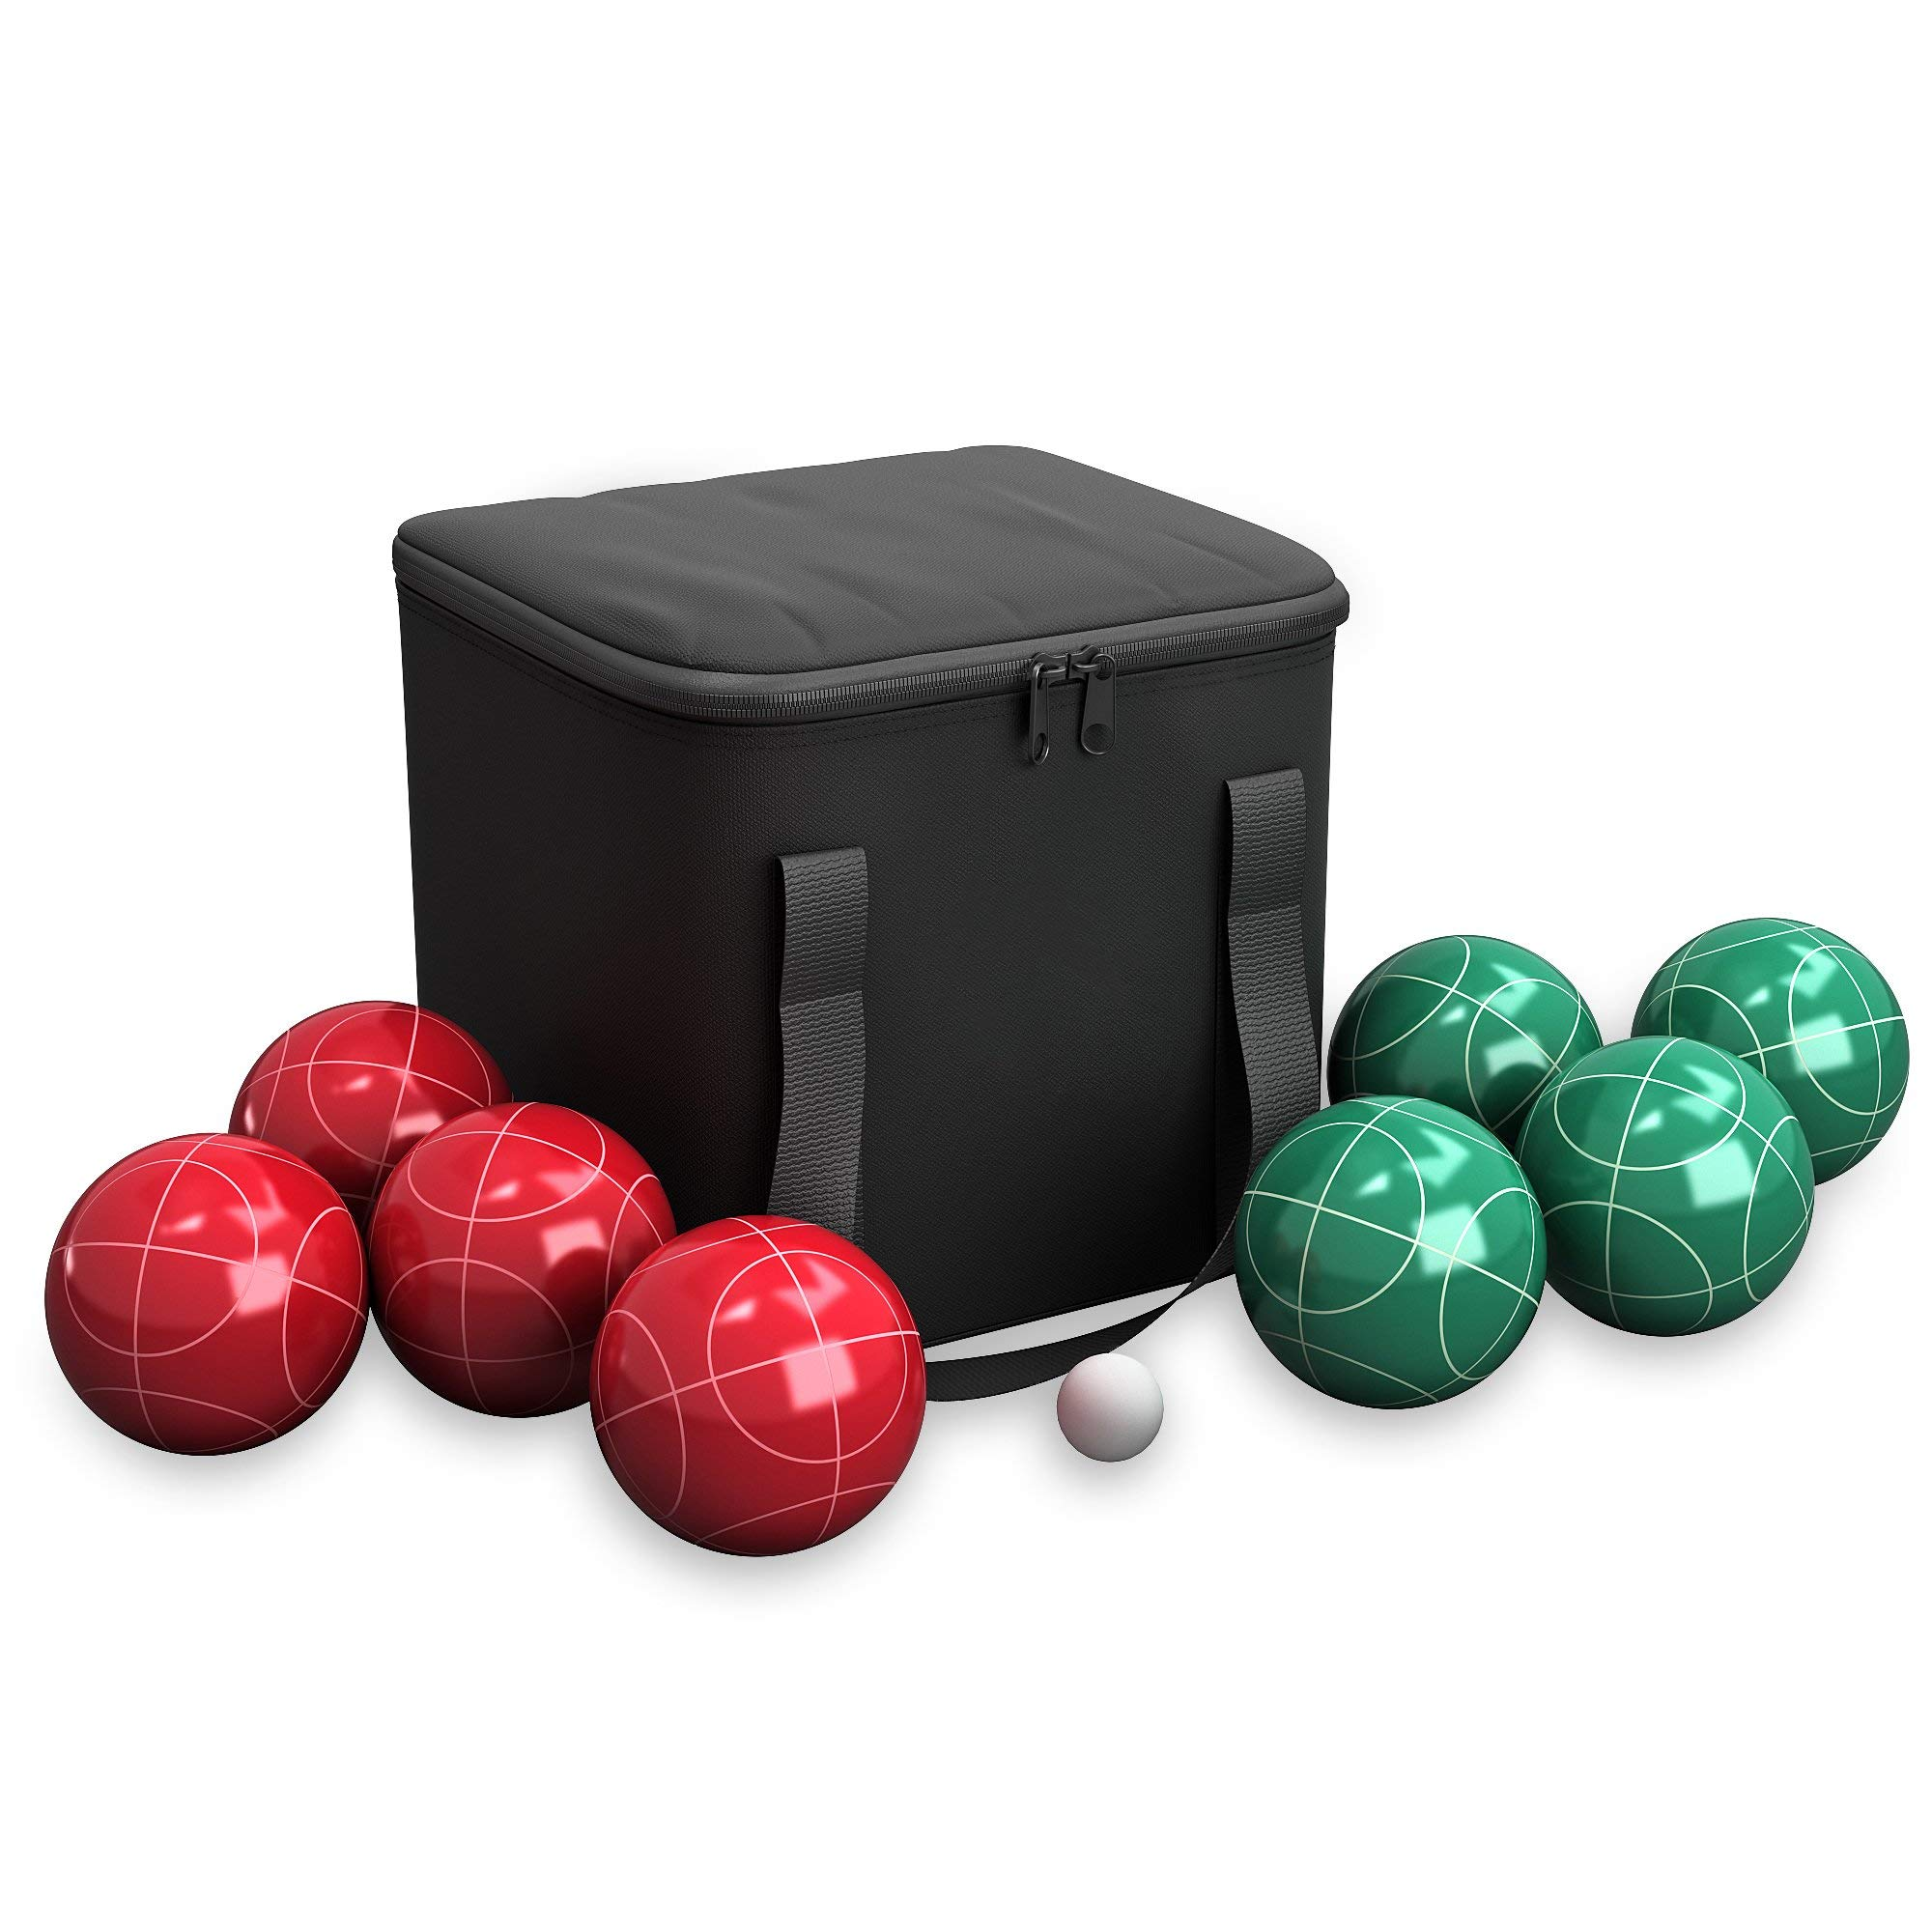 Hey! Play! 80-76090 Bocce Ball Set- Outdoor Family Bocce Game for Backyard, Lawn, Beach & More- 4 Red & 4 Green Balls, Pallino & Carrying Case (Renewed) by Hey! Play!